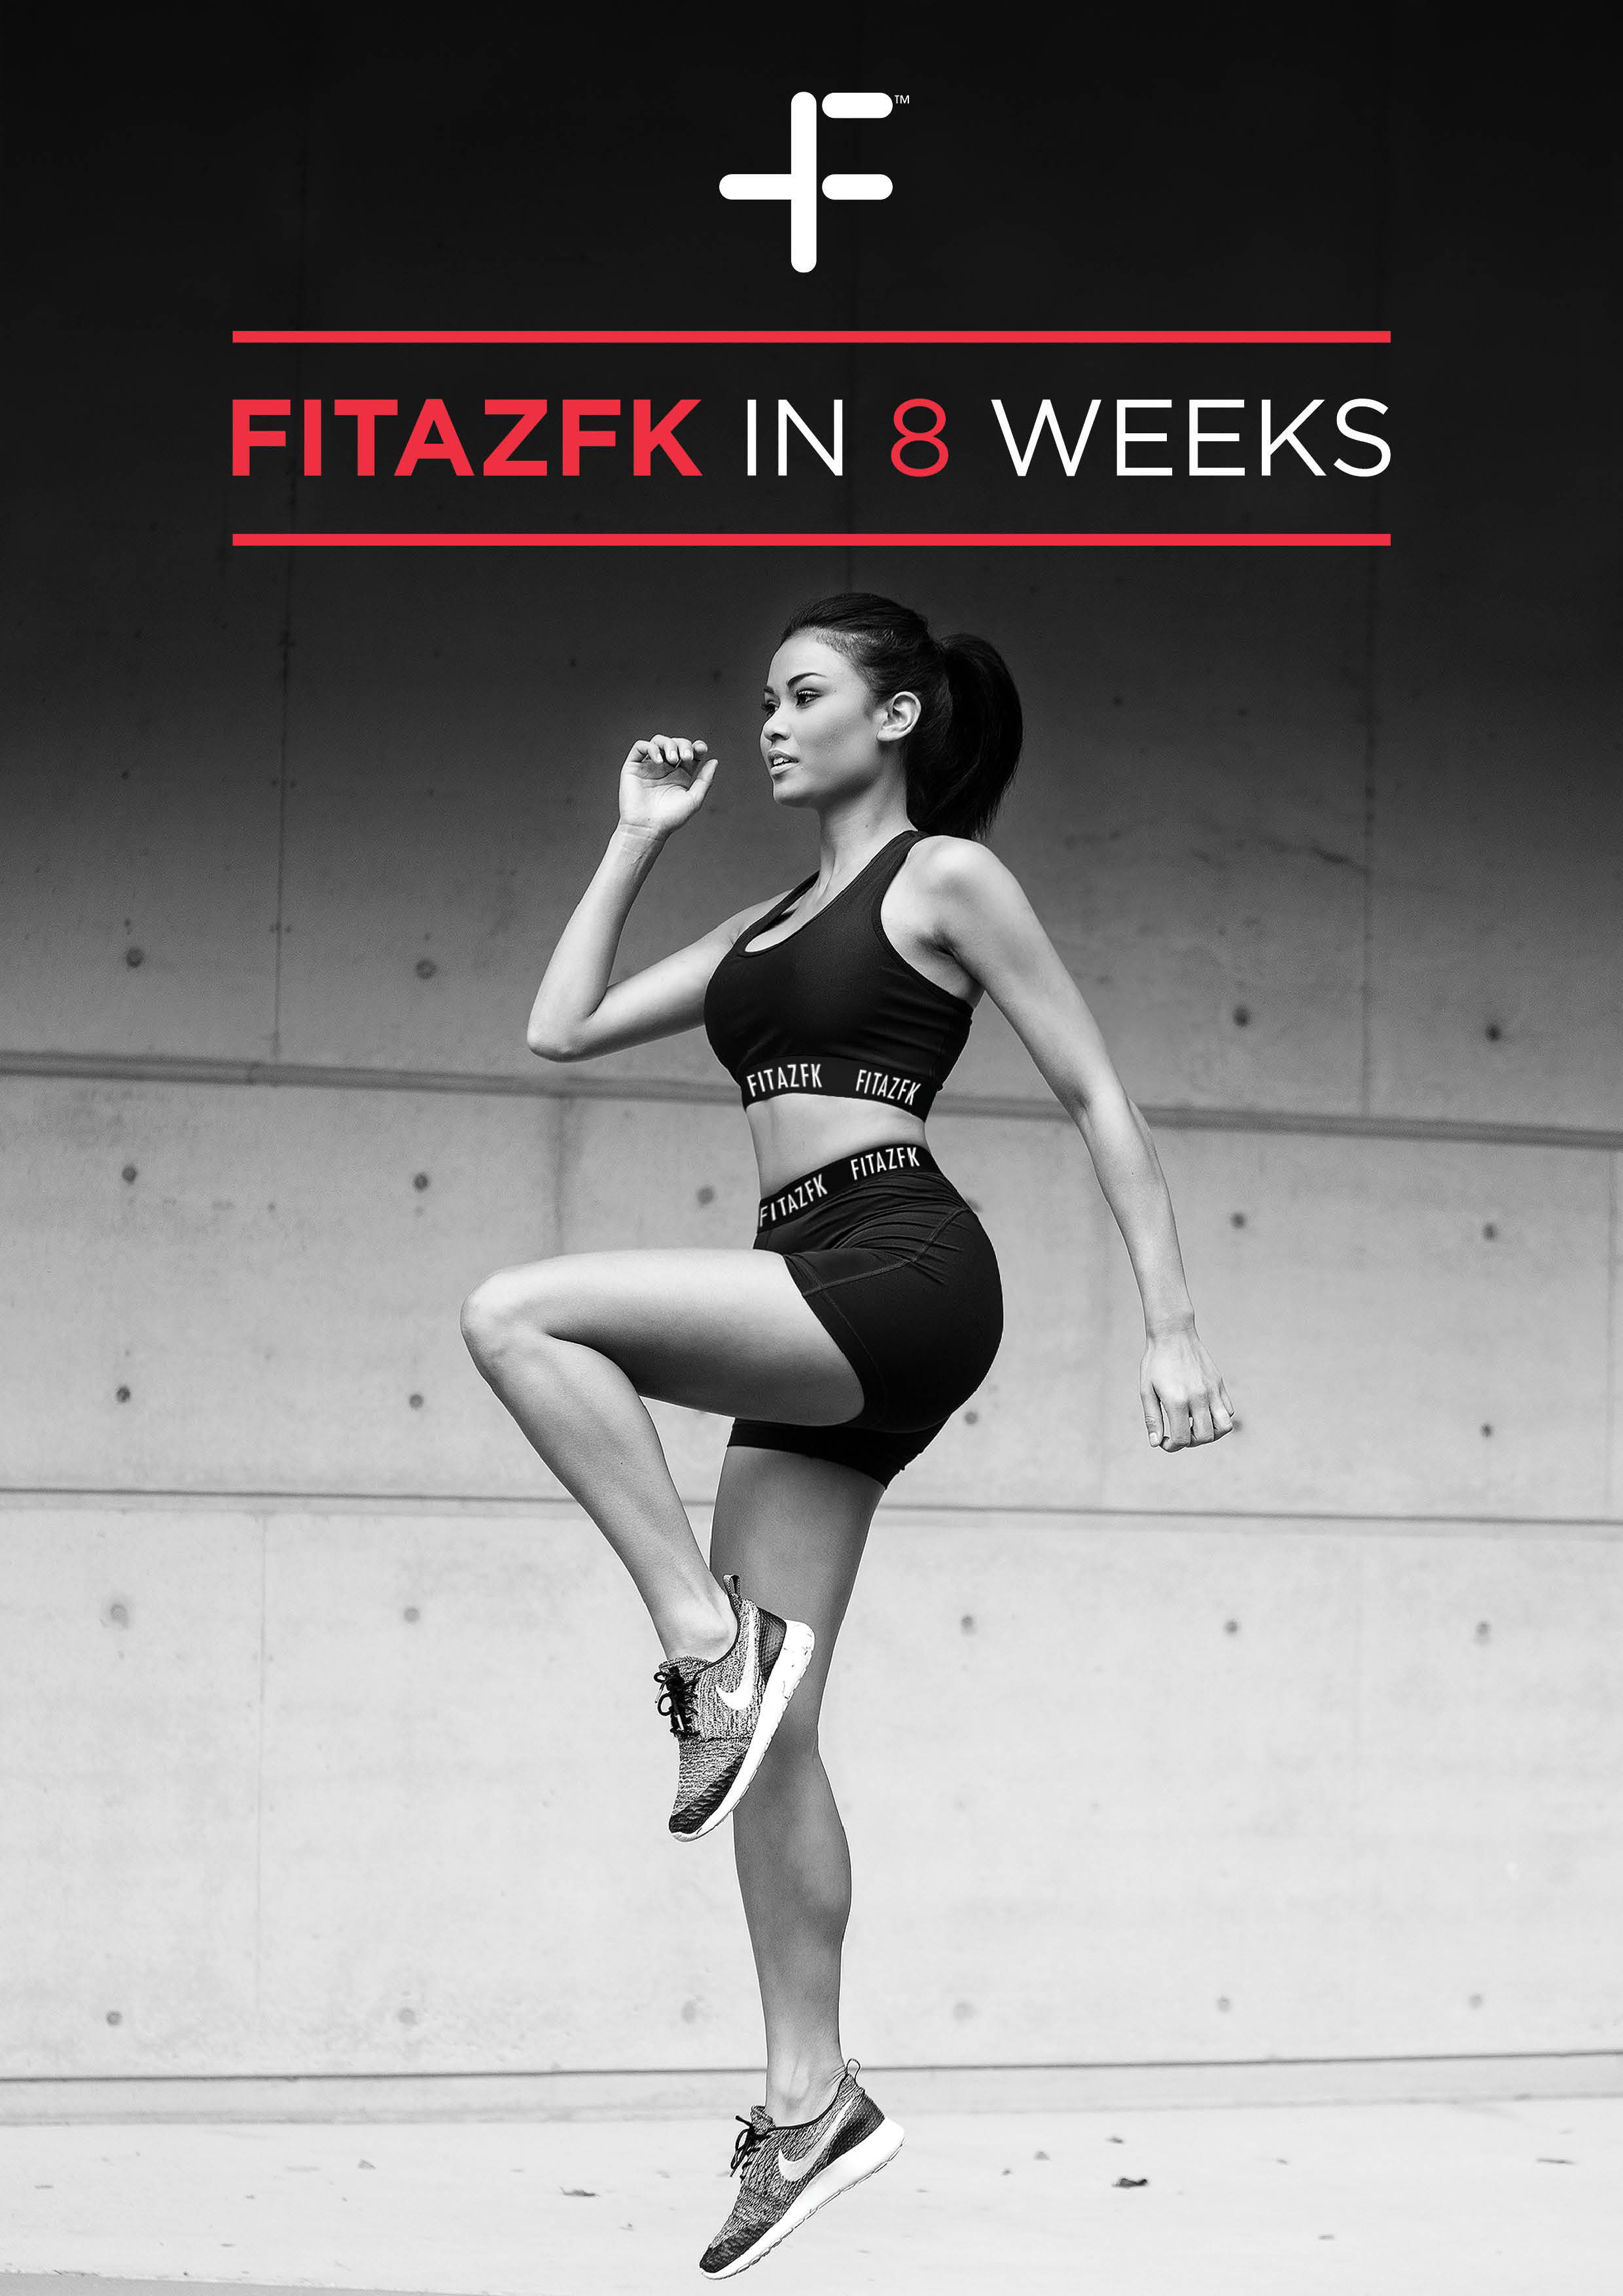 8 week Fitness and Nutrition Guide